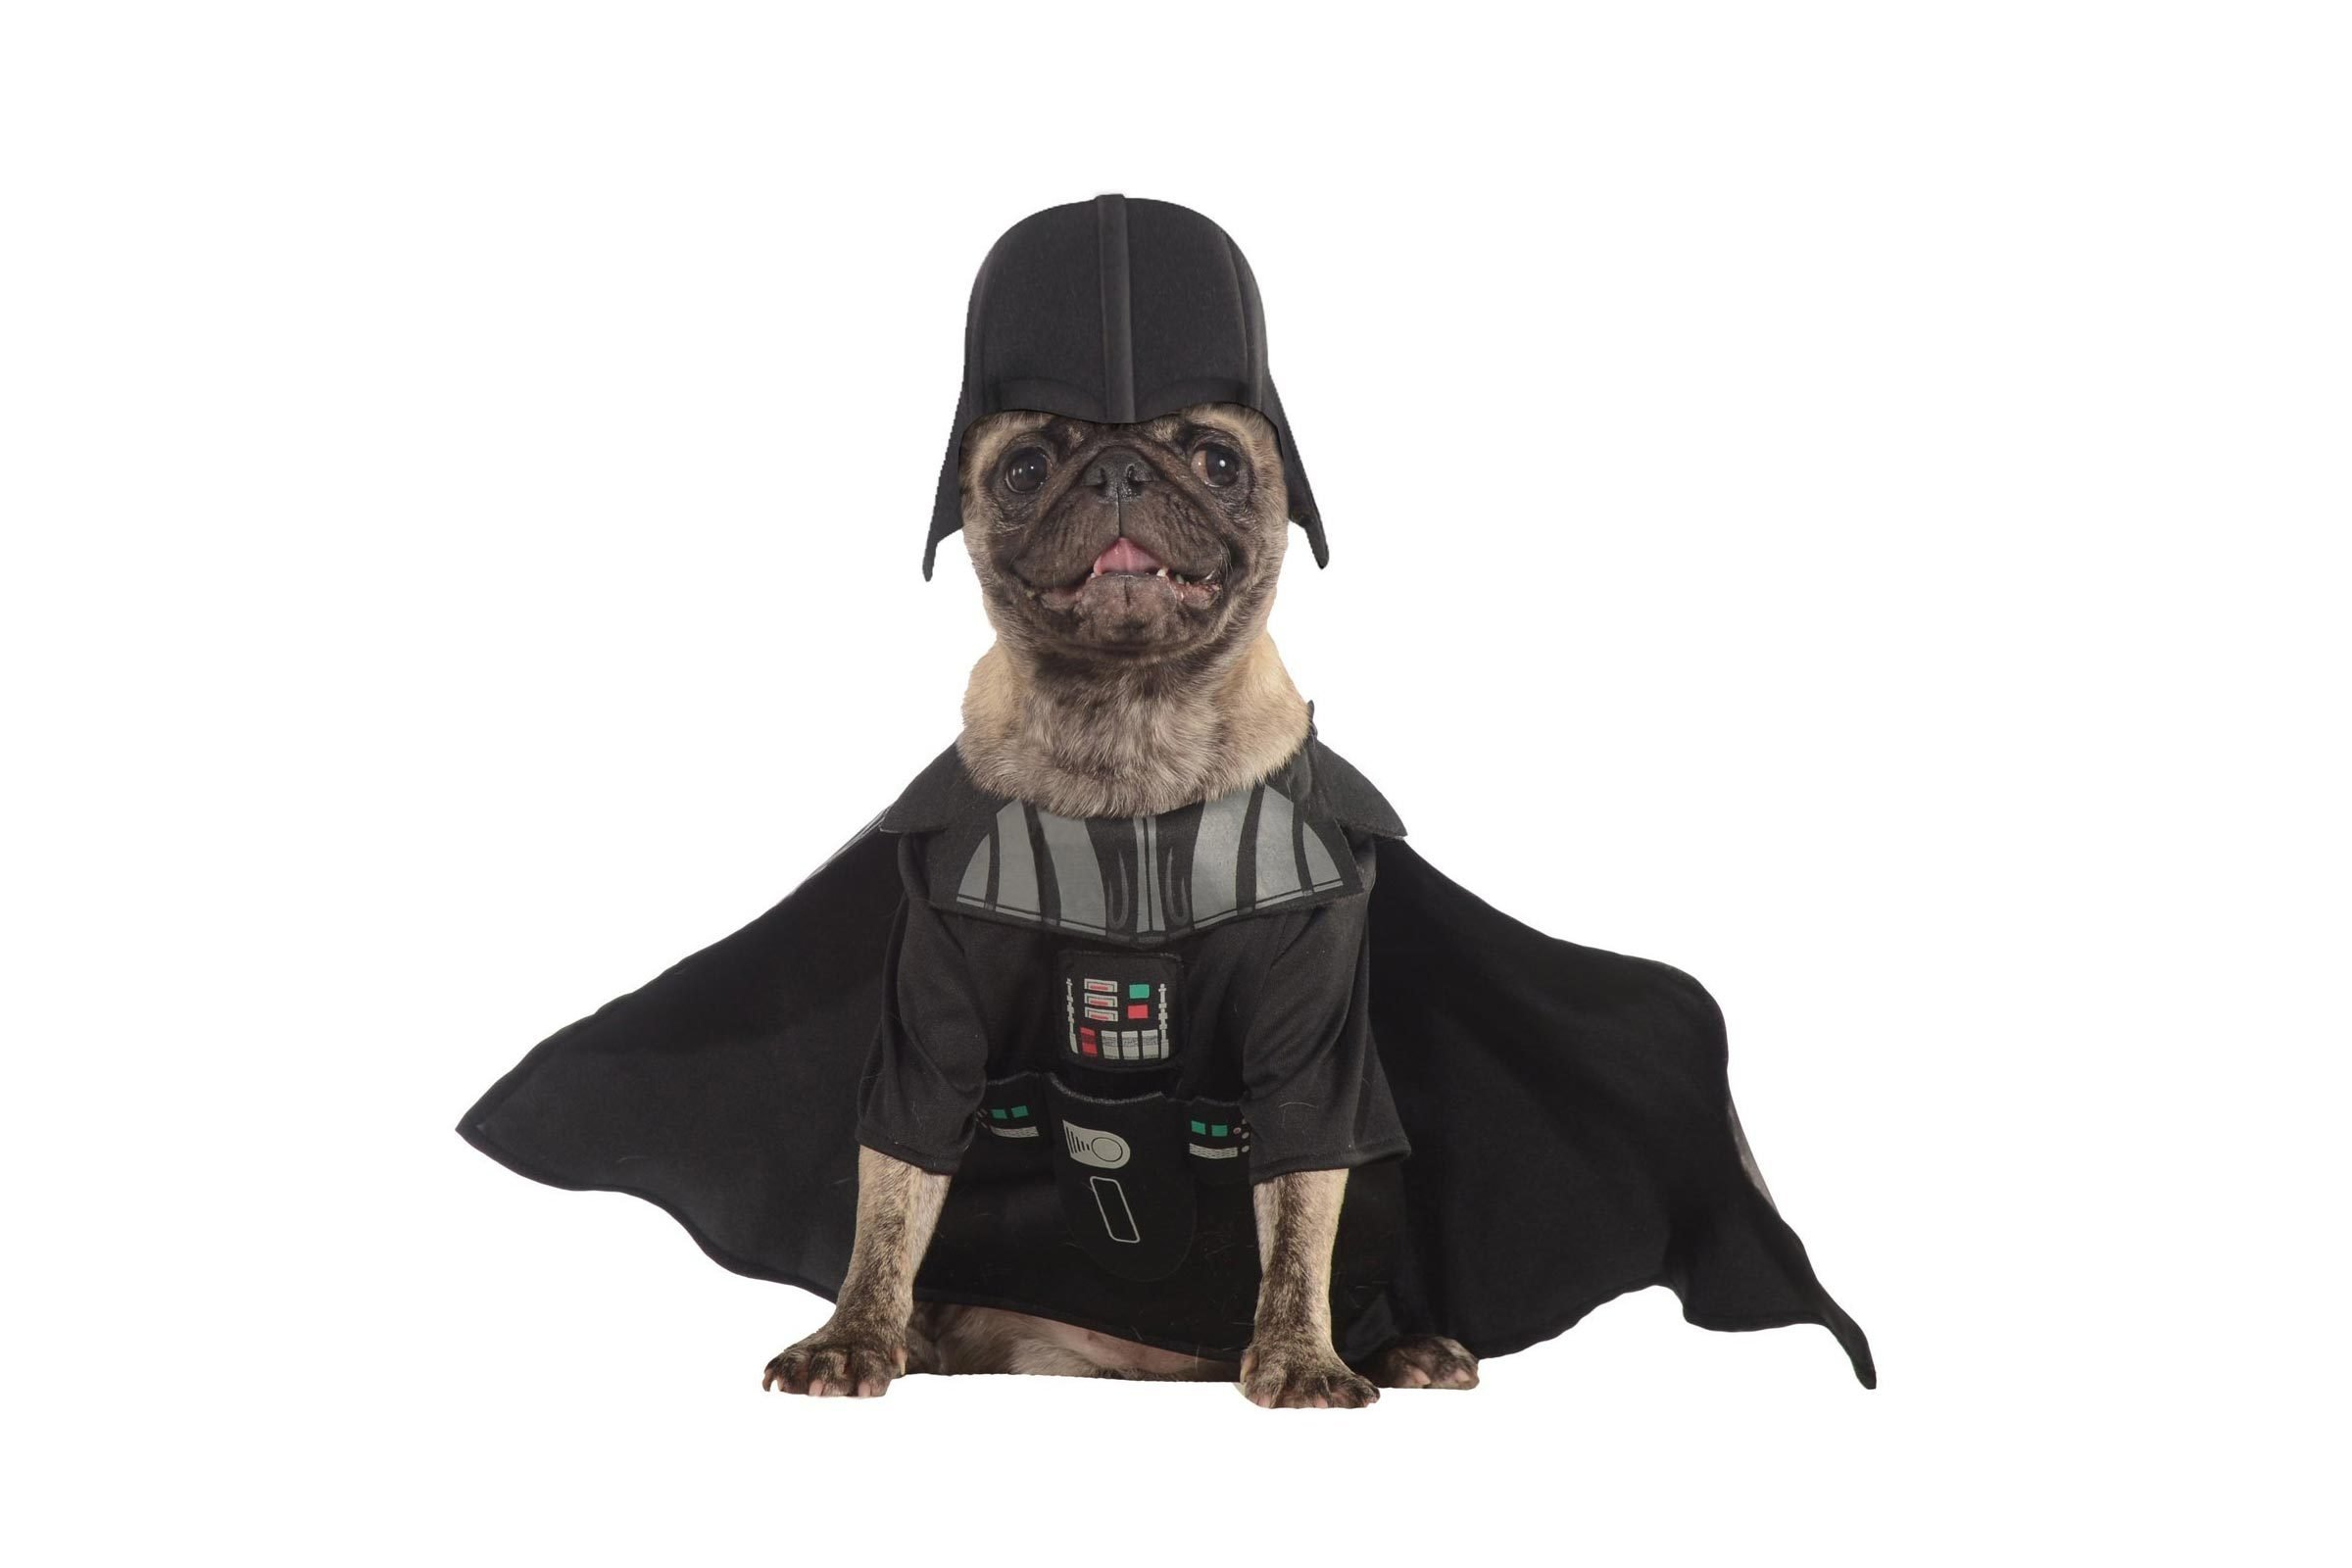 your furry friend rule the galaxy this halloween with this star wars inspired costume from amazon if youre entertaining star wars fans on halloween - Dogs With Halloween Costumes On